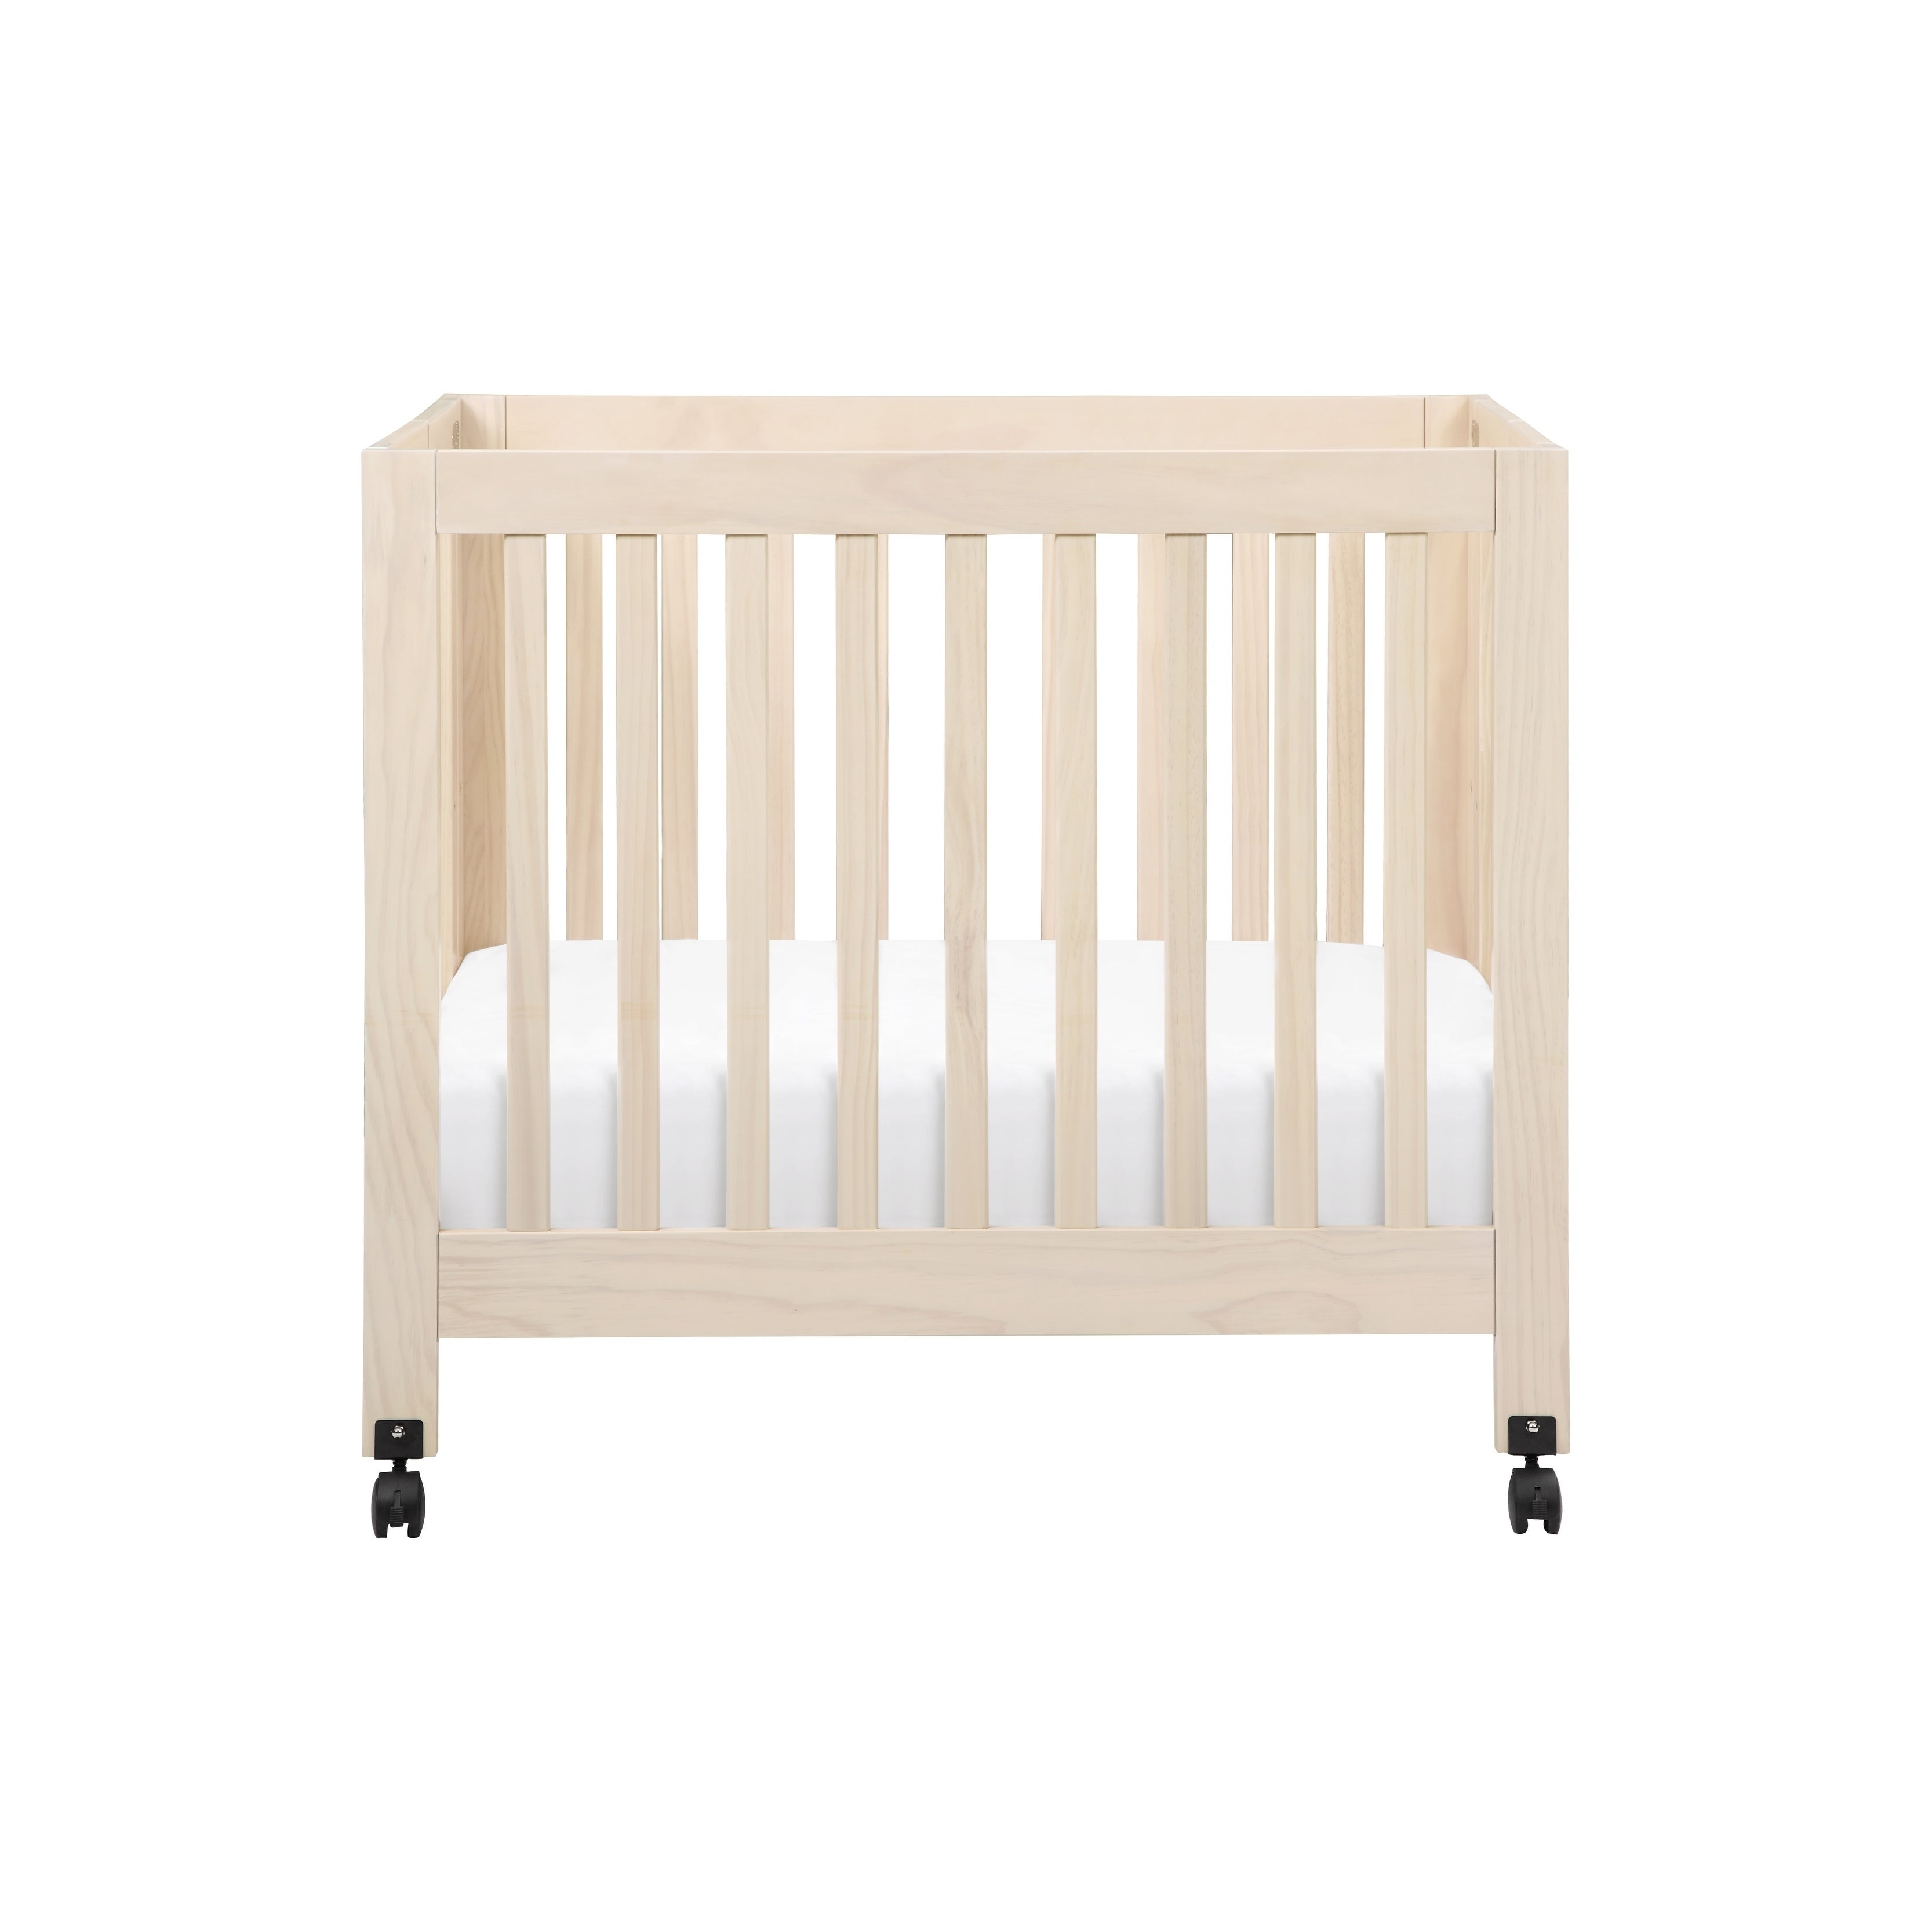 crib mini must have space by shopping guide albie the blog knows small